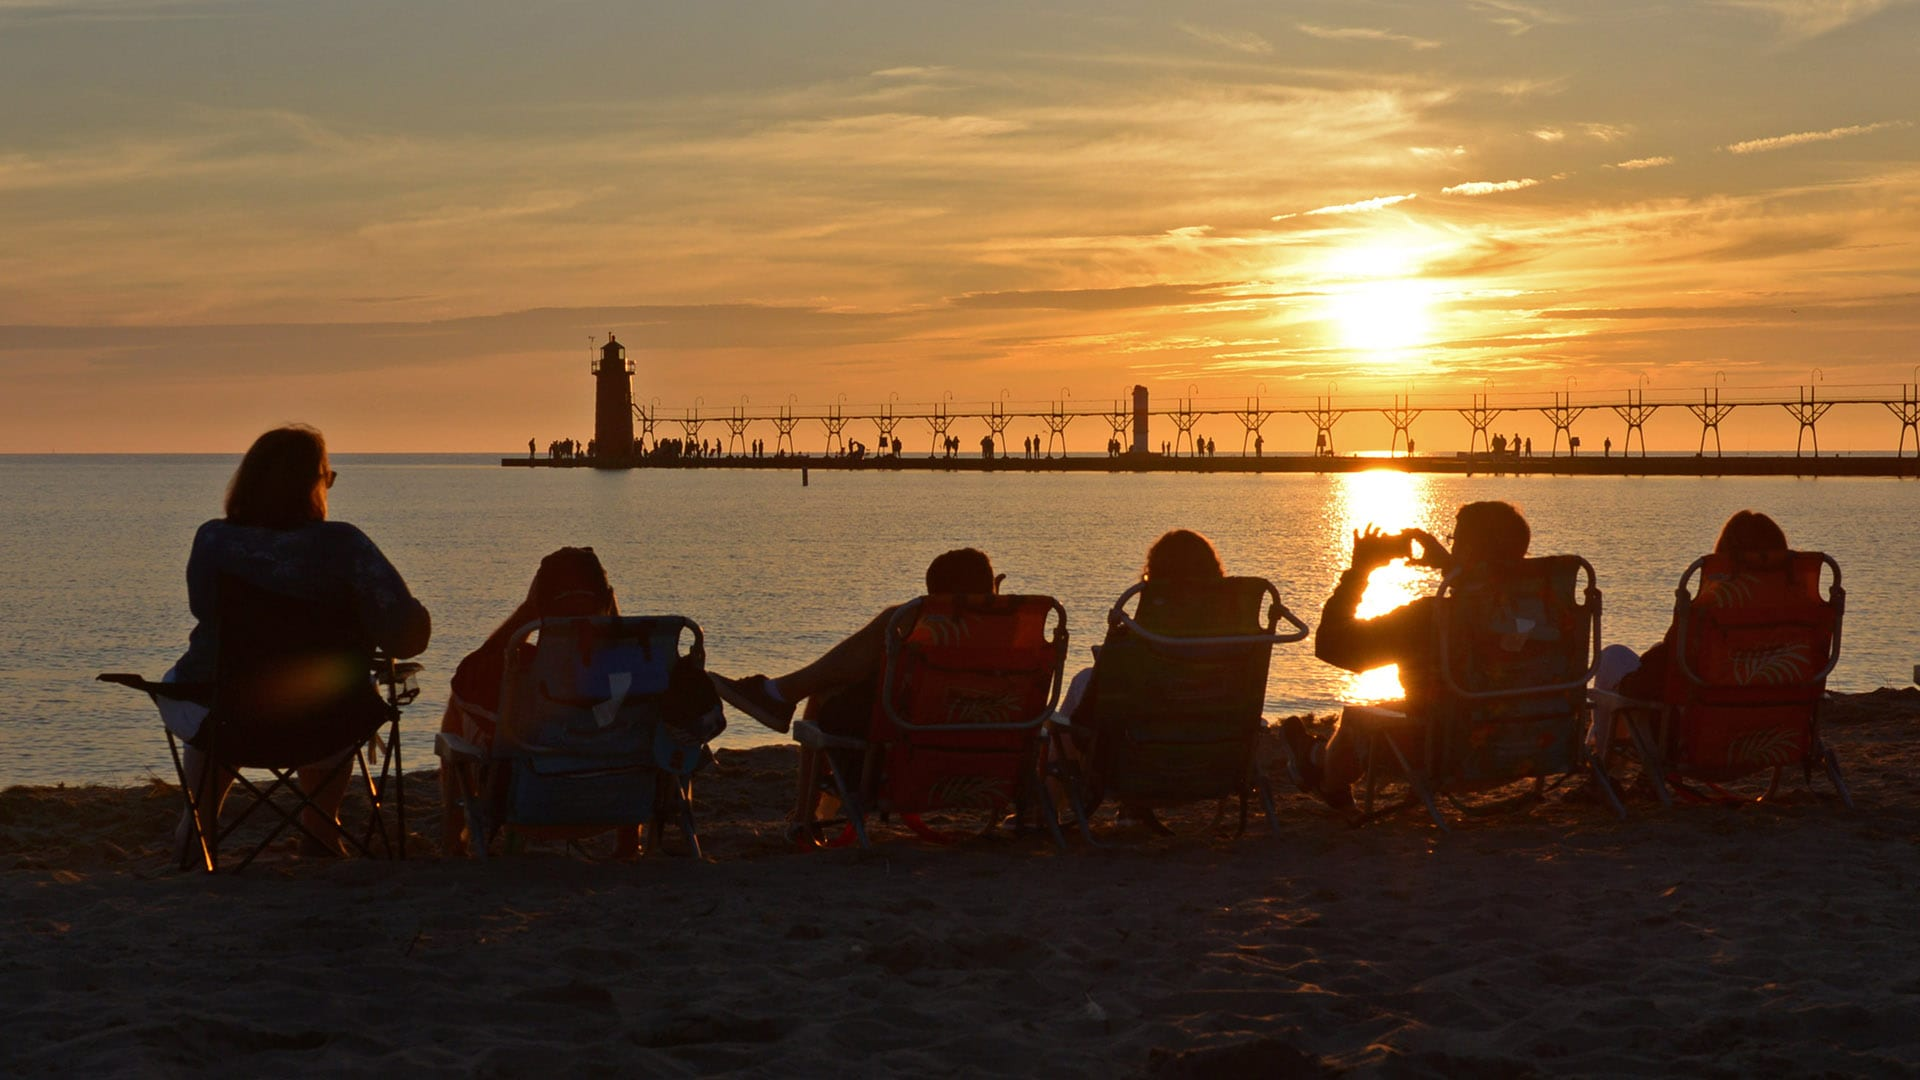 People watch the sun set near the historic lighthouse in South Haven, Michigan.